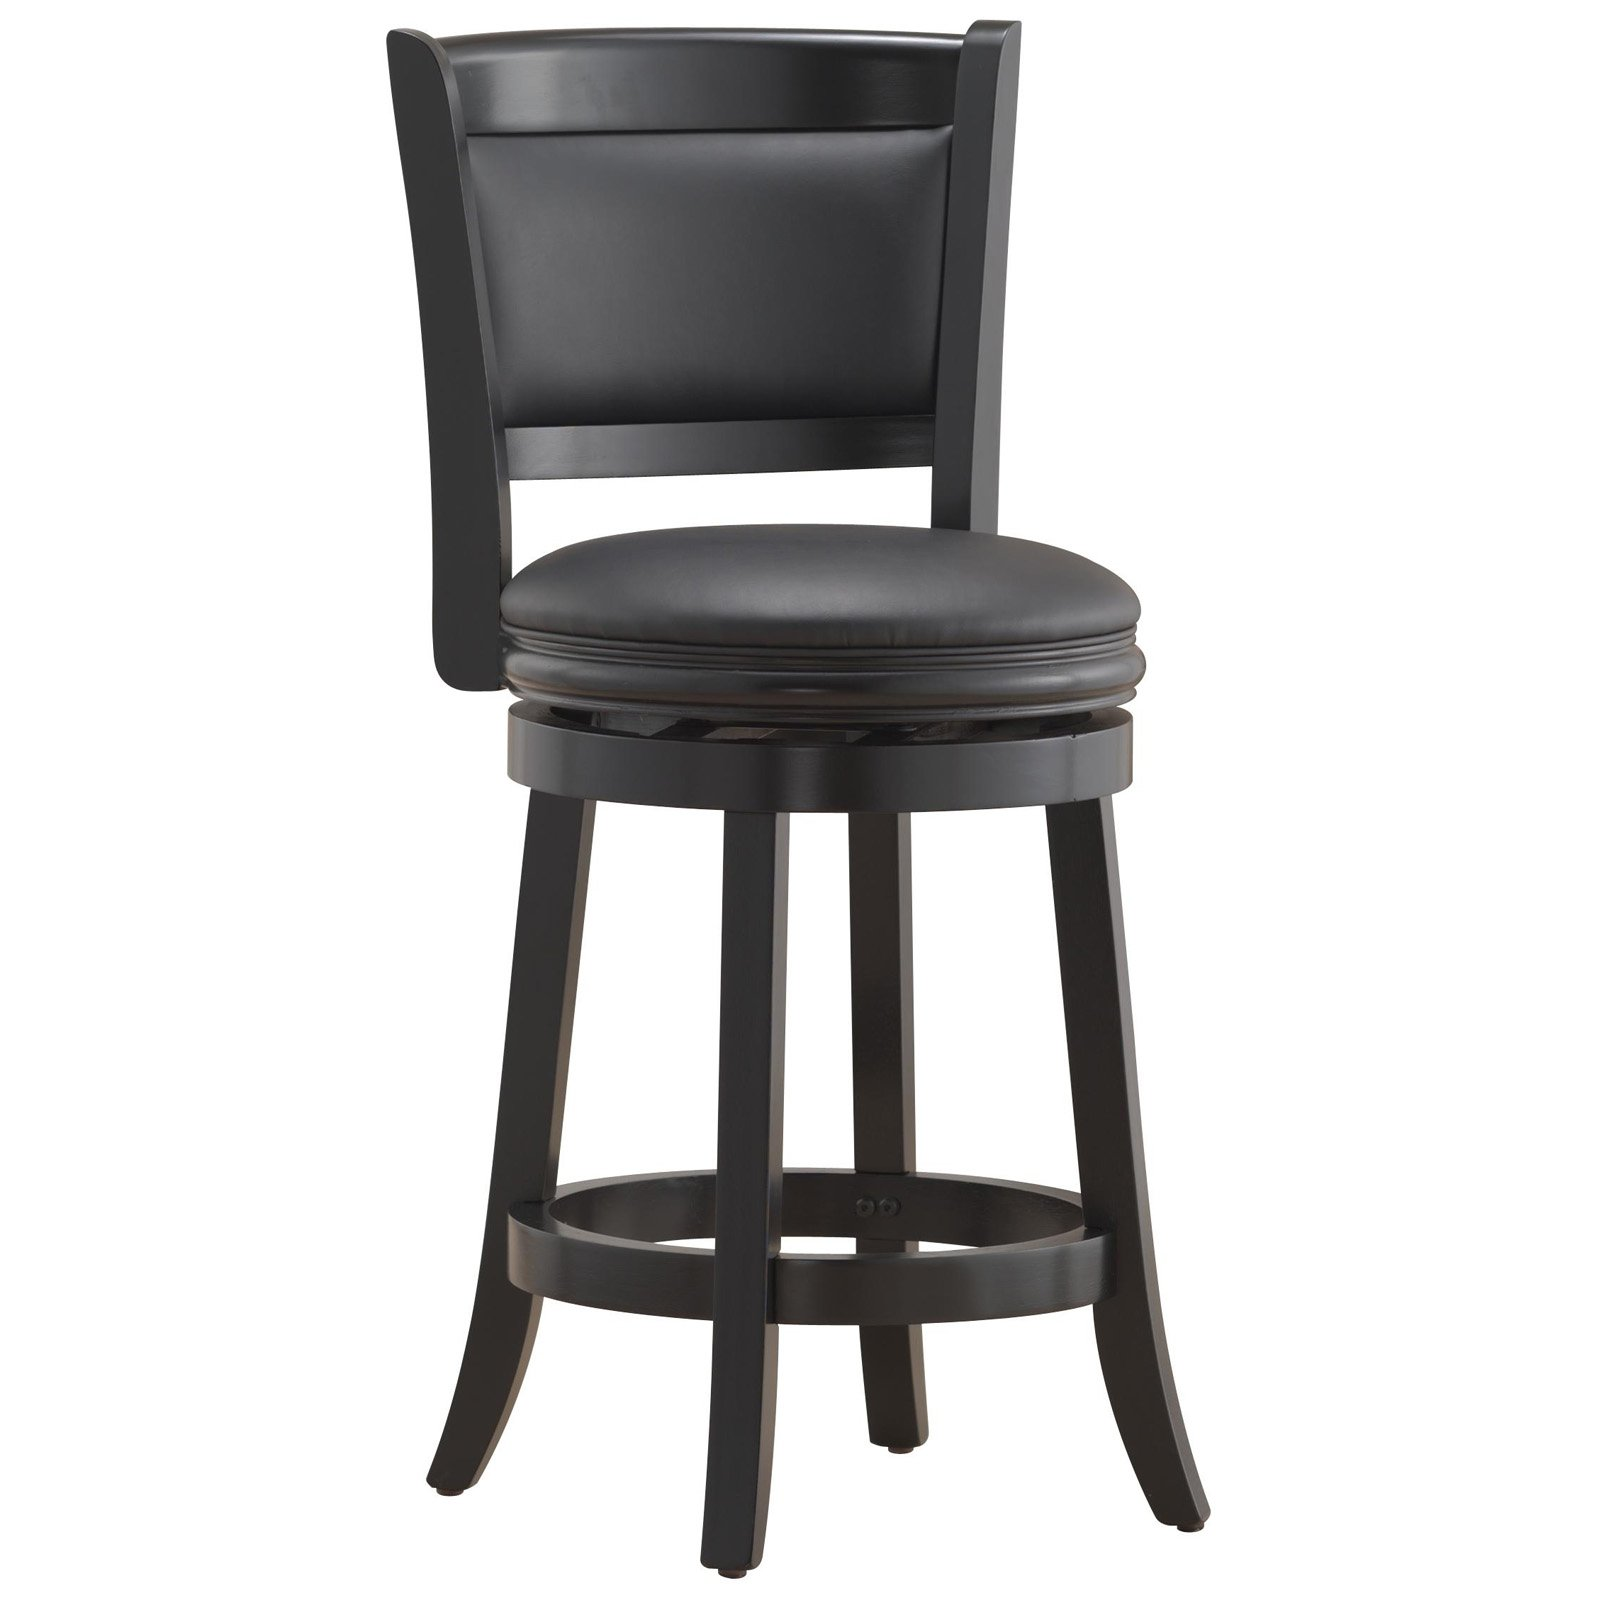 Boraam Augusta 24  Swivel Counter Stool Multiple Finishes - Walmart.com  sc 1 st  Walmart & Boraam Augusta 24